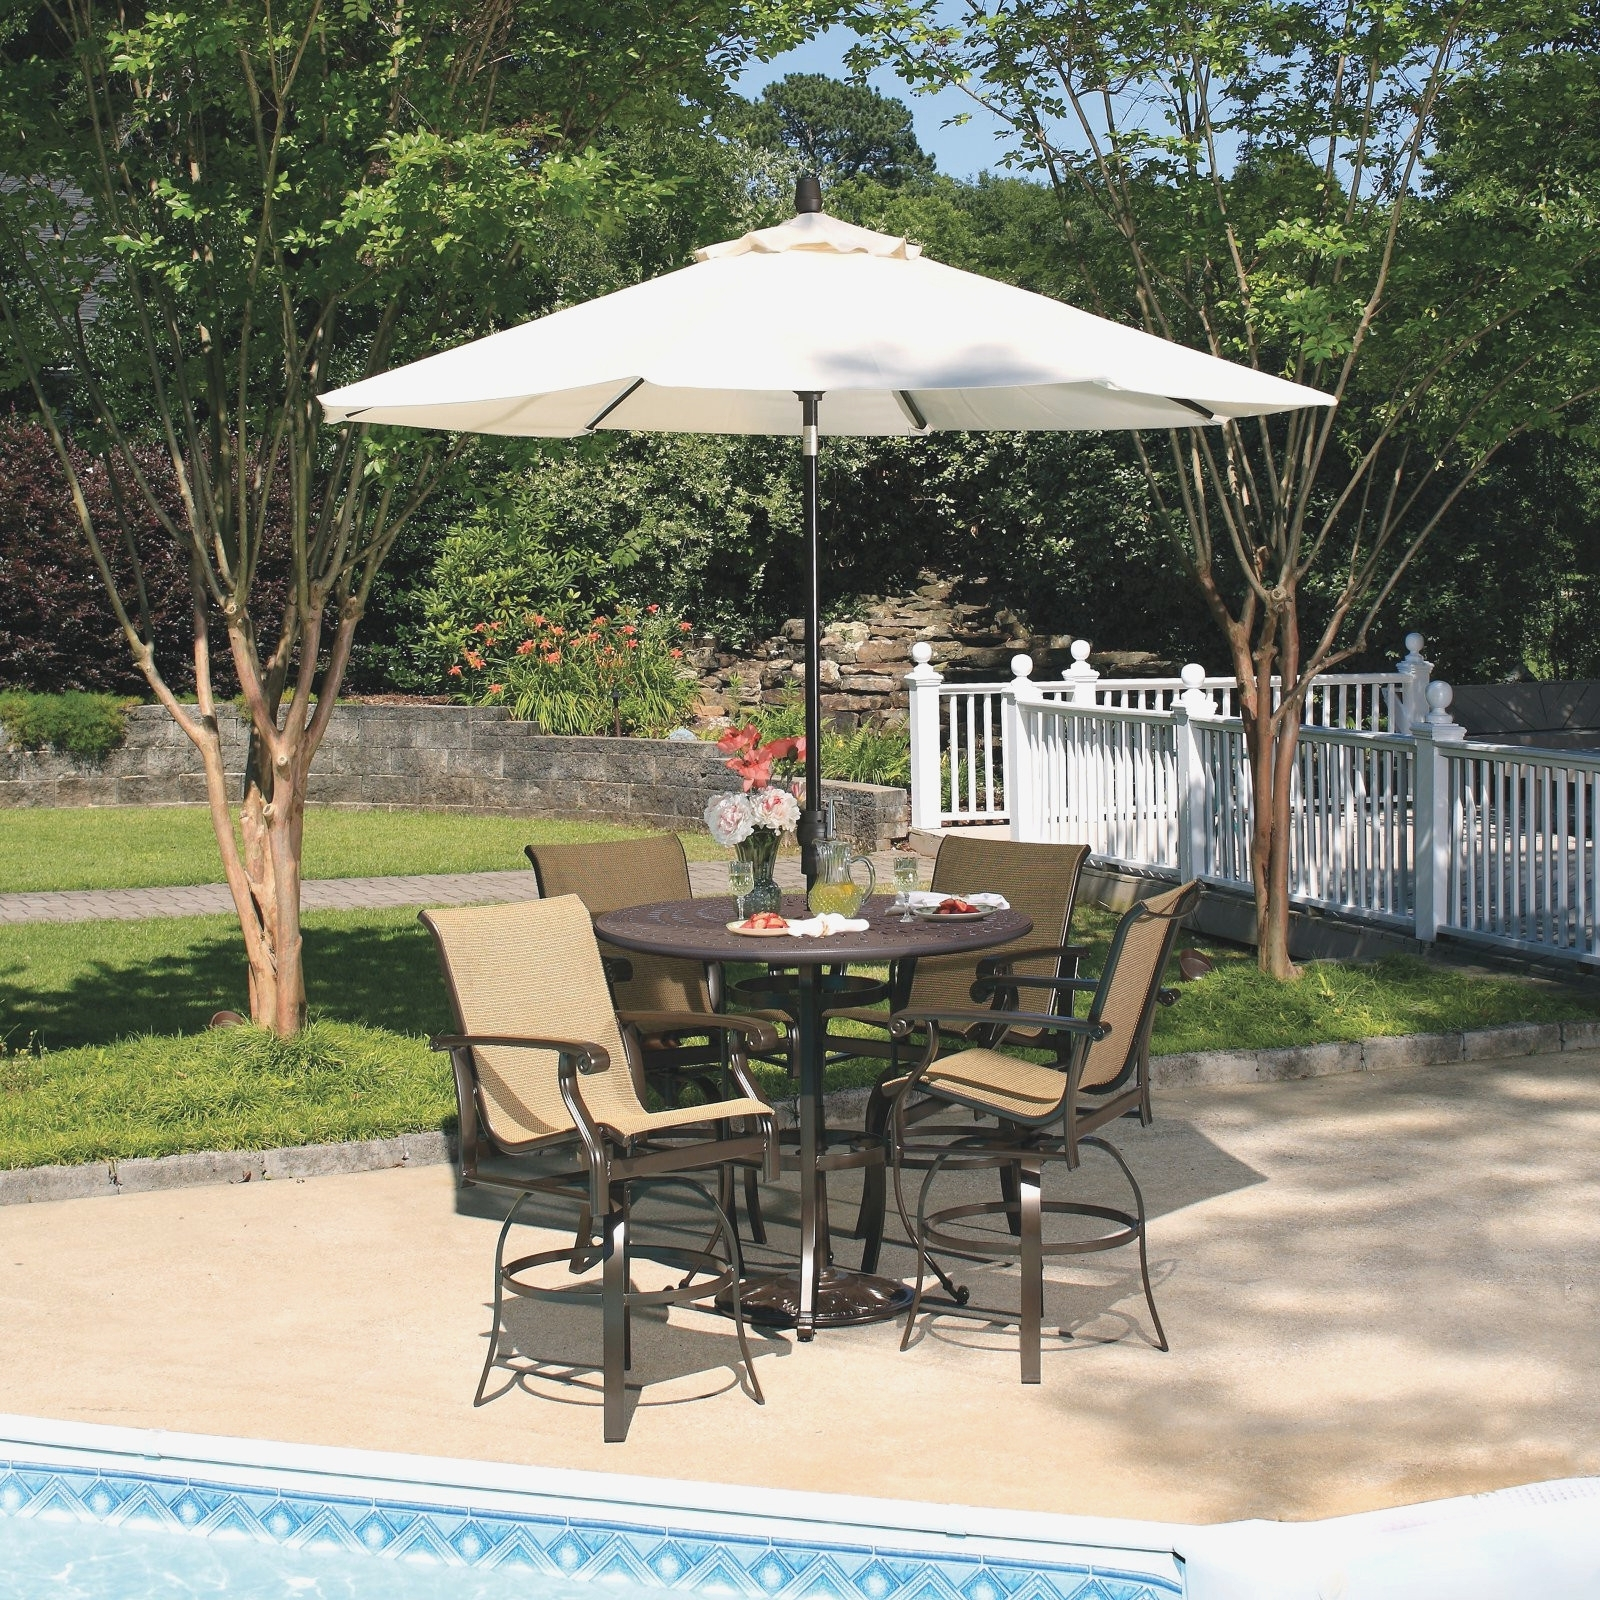 Dadisinthehouse Pertaining To Popular Vinyl Patio Umbrellas (Gallery 10 of 20)